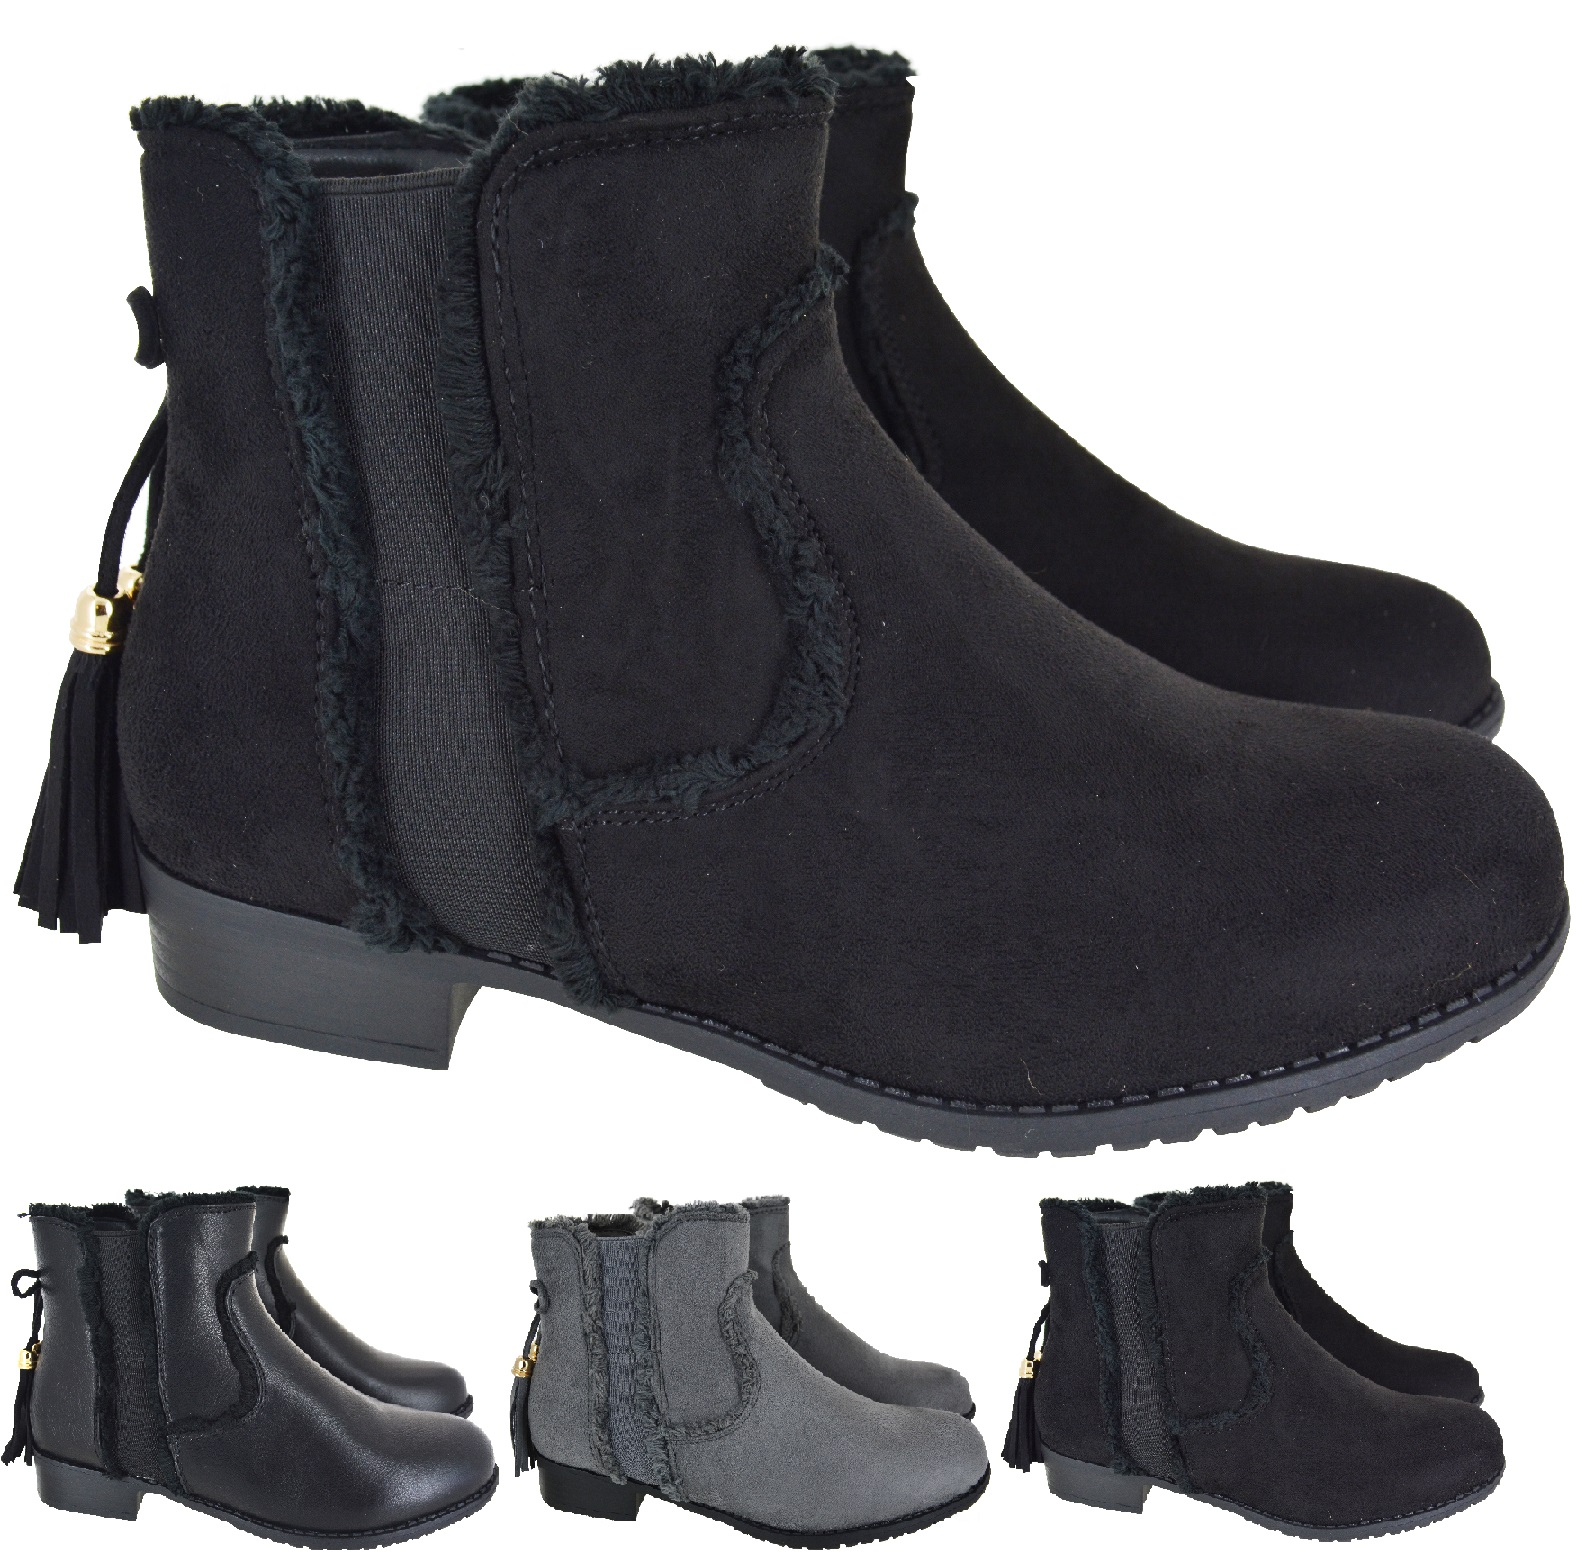 WOMENS CASUAL TASSEL CHELSEA STYLE LOW BLOCK HEEL LADIES ANKLE BOOTS SIZE 3-8